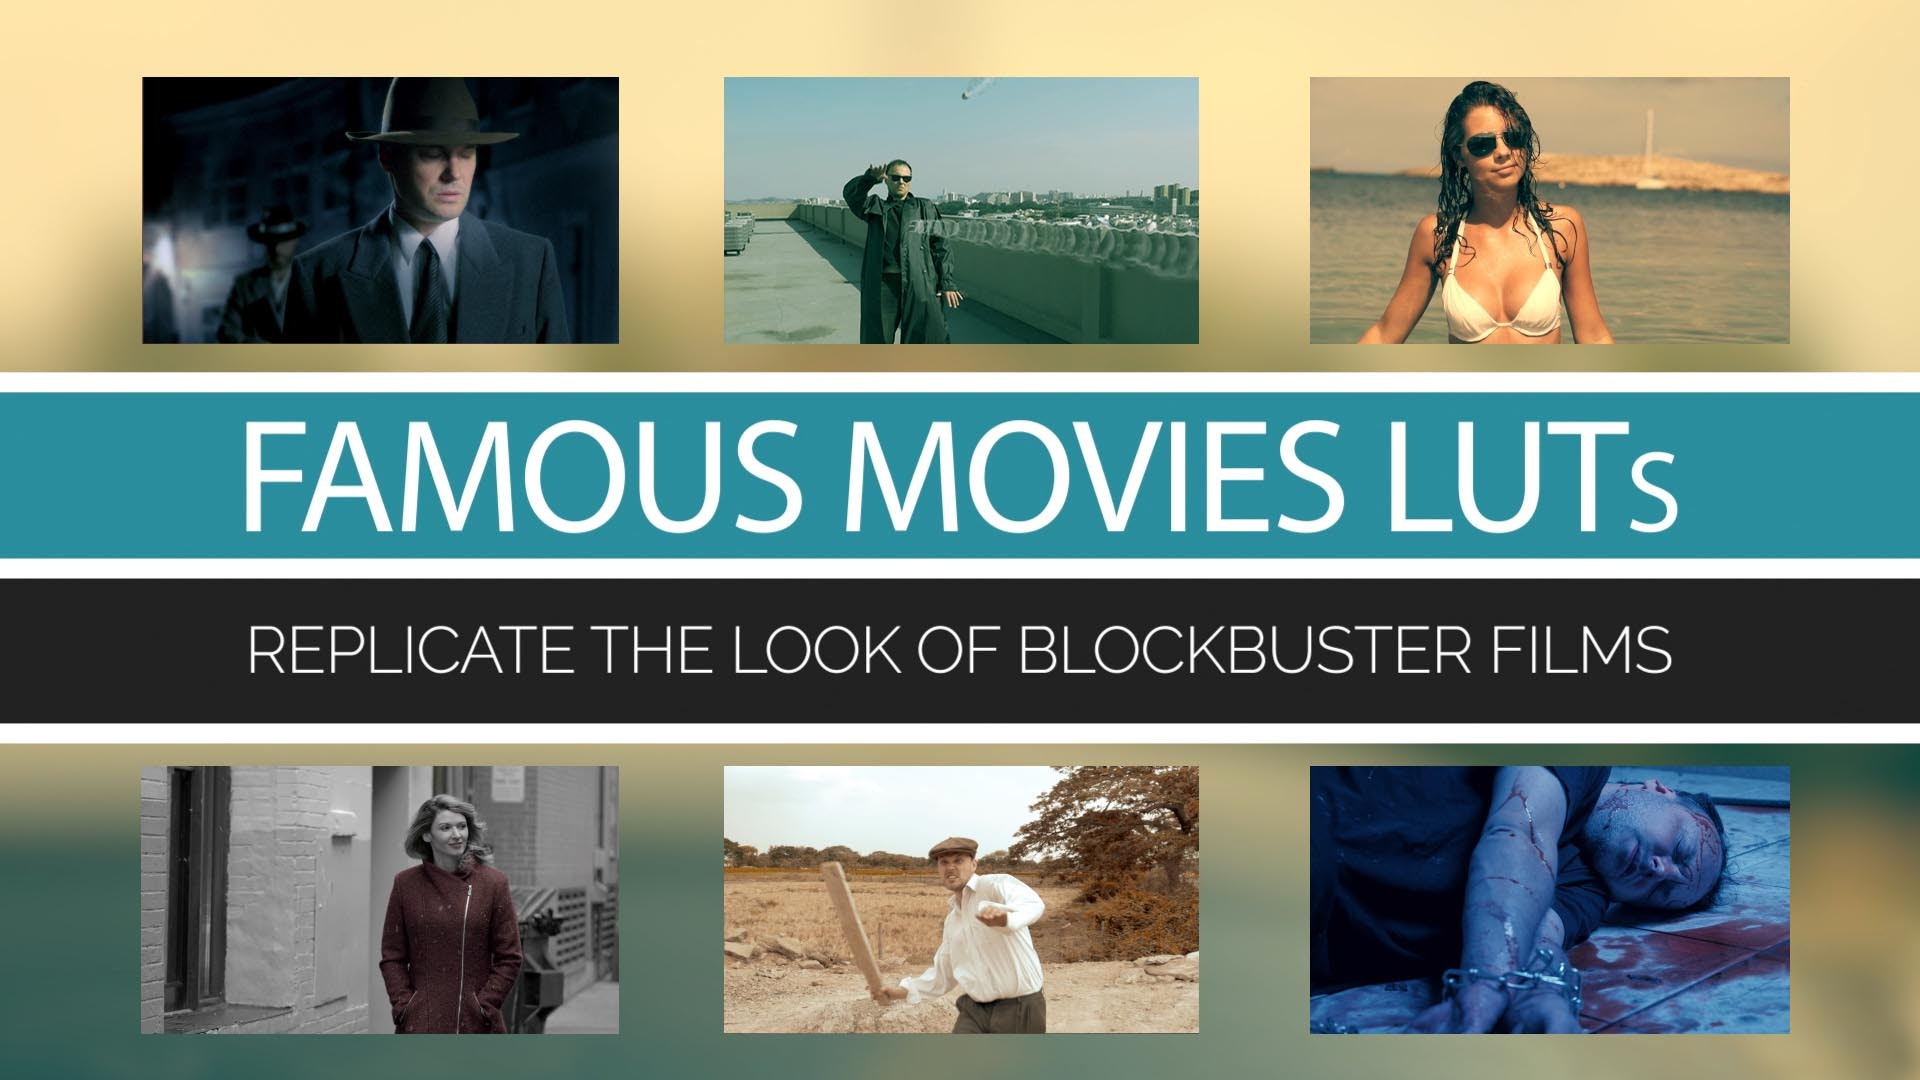 Famous Movies LUTs